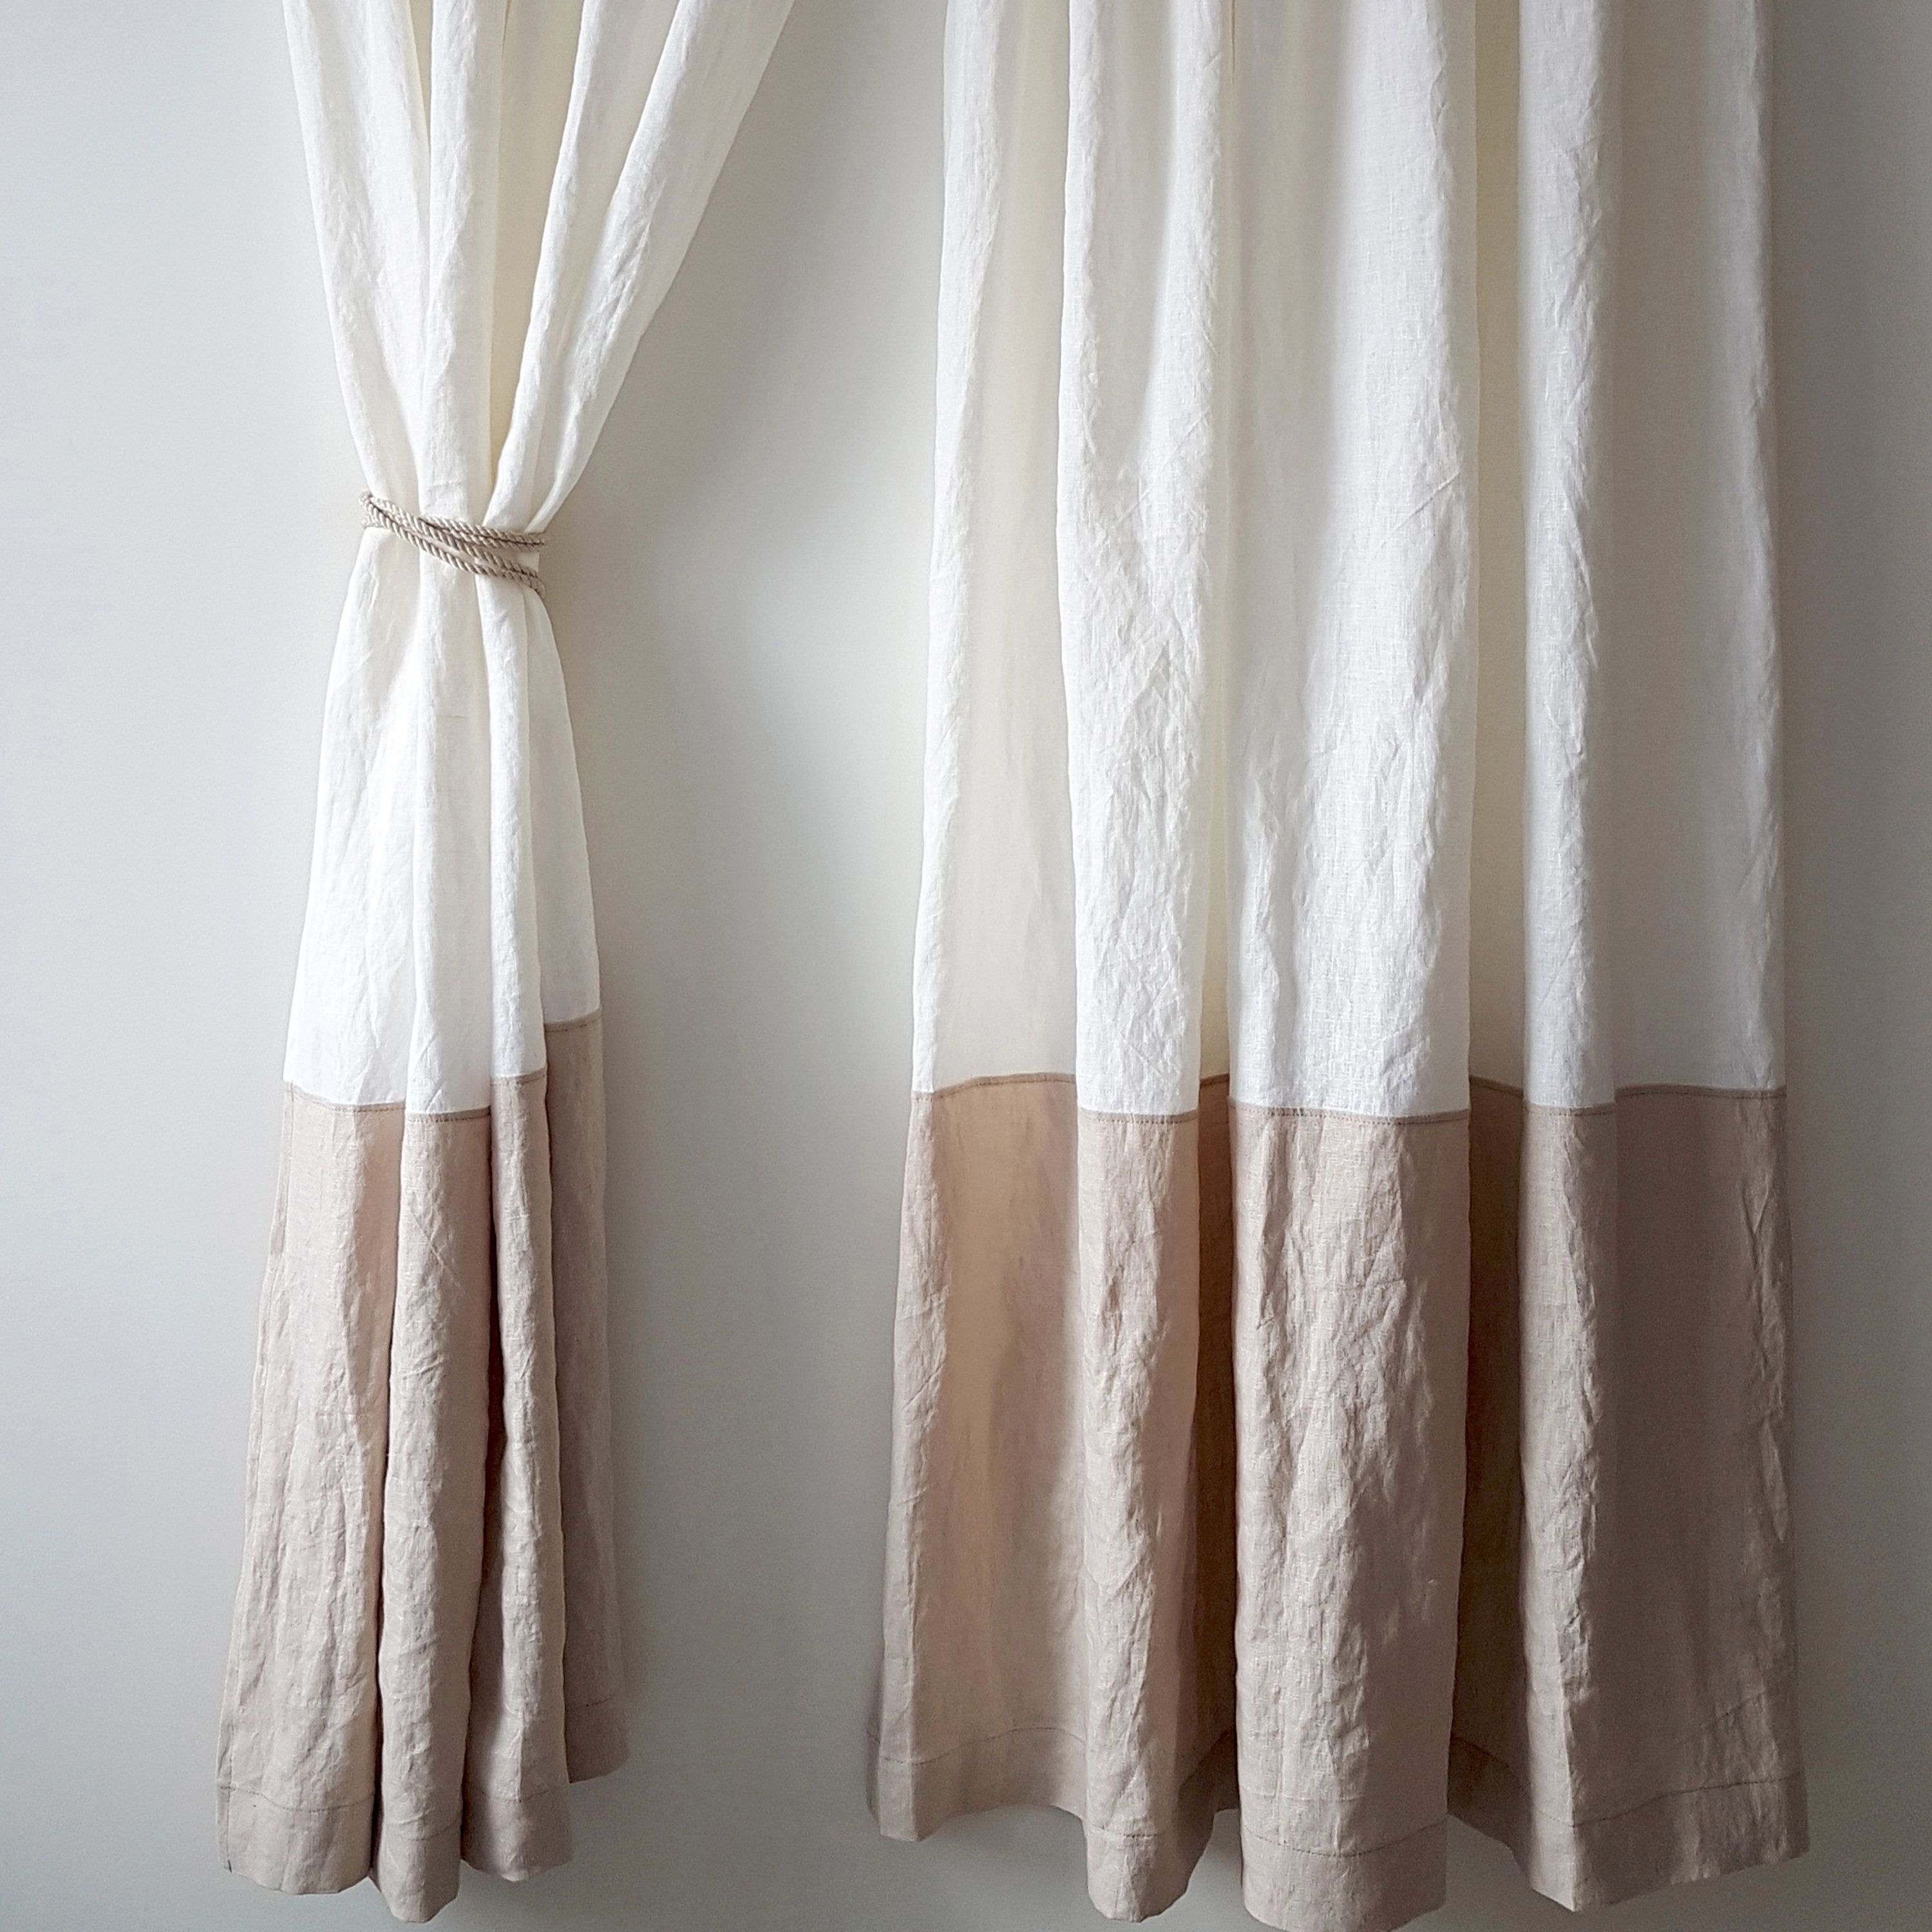 Linen Curtains In Two Colors Shabby Chic Curtains Organic Curtains